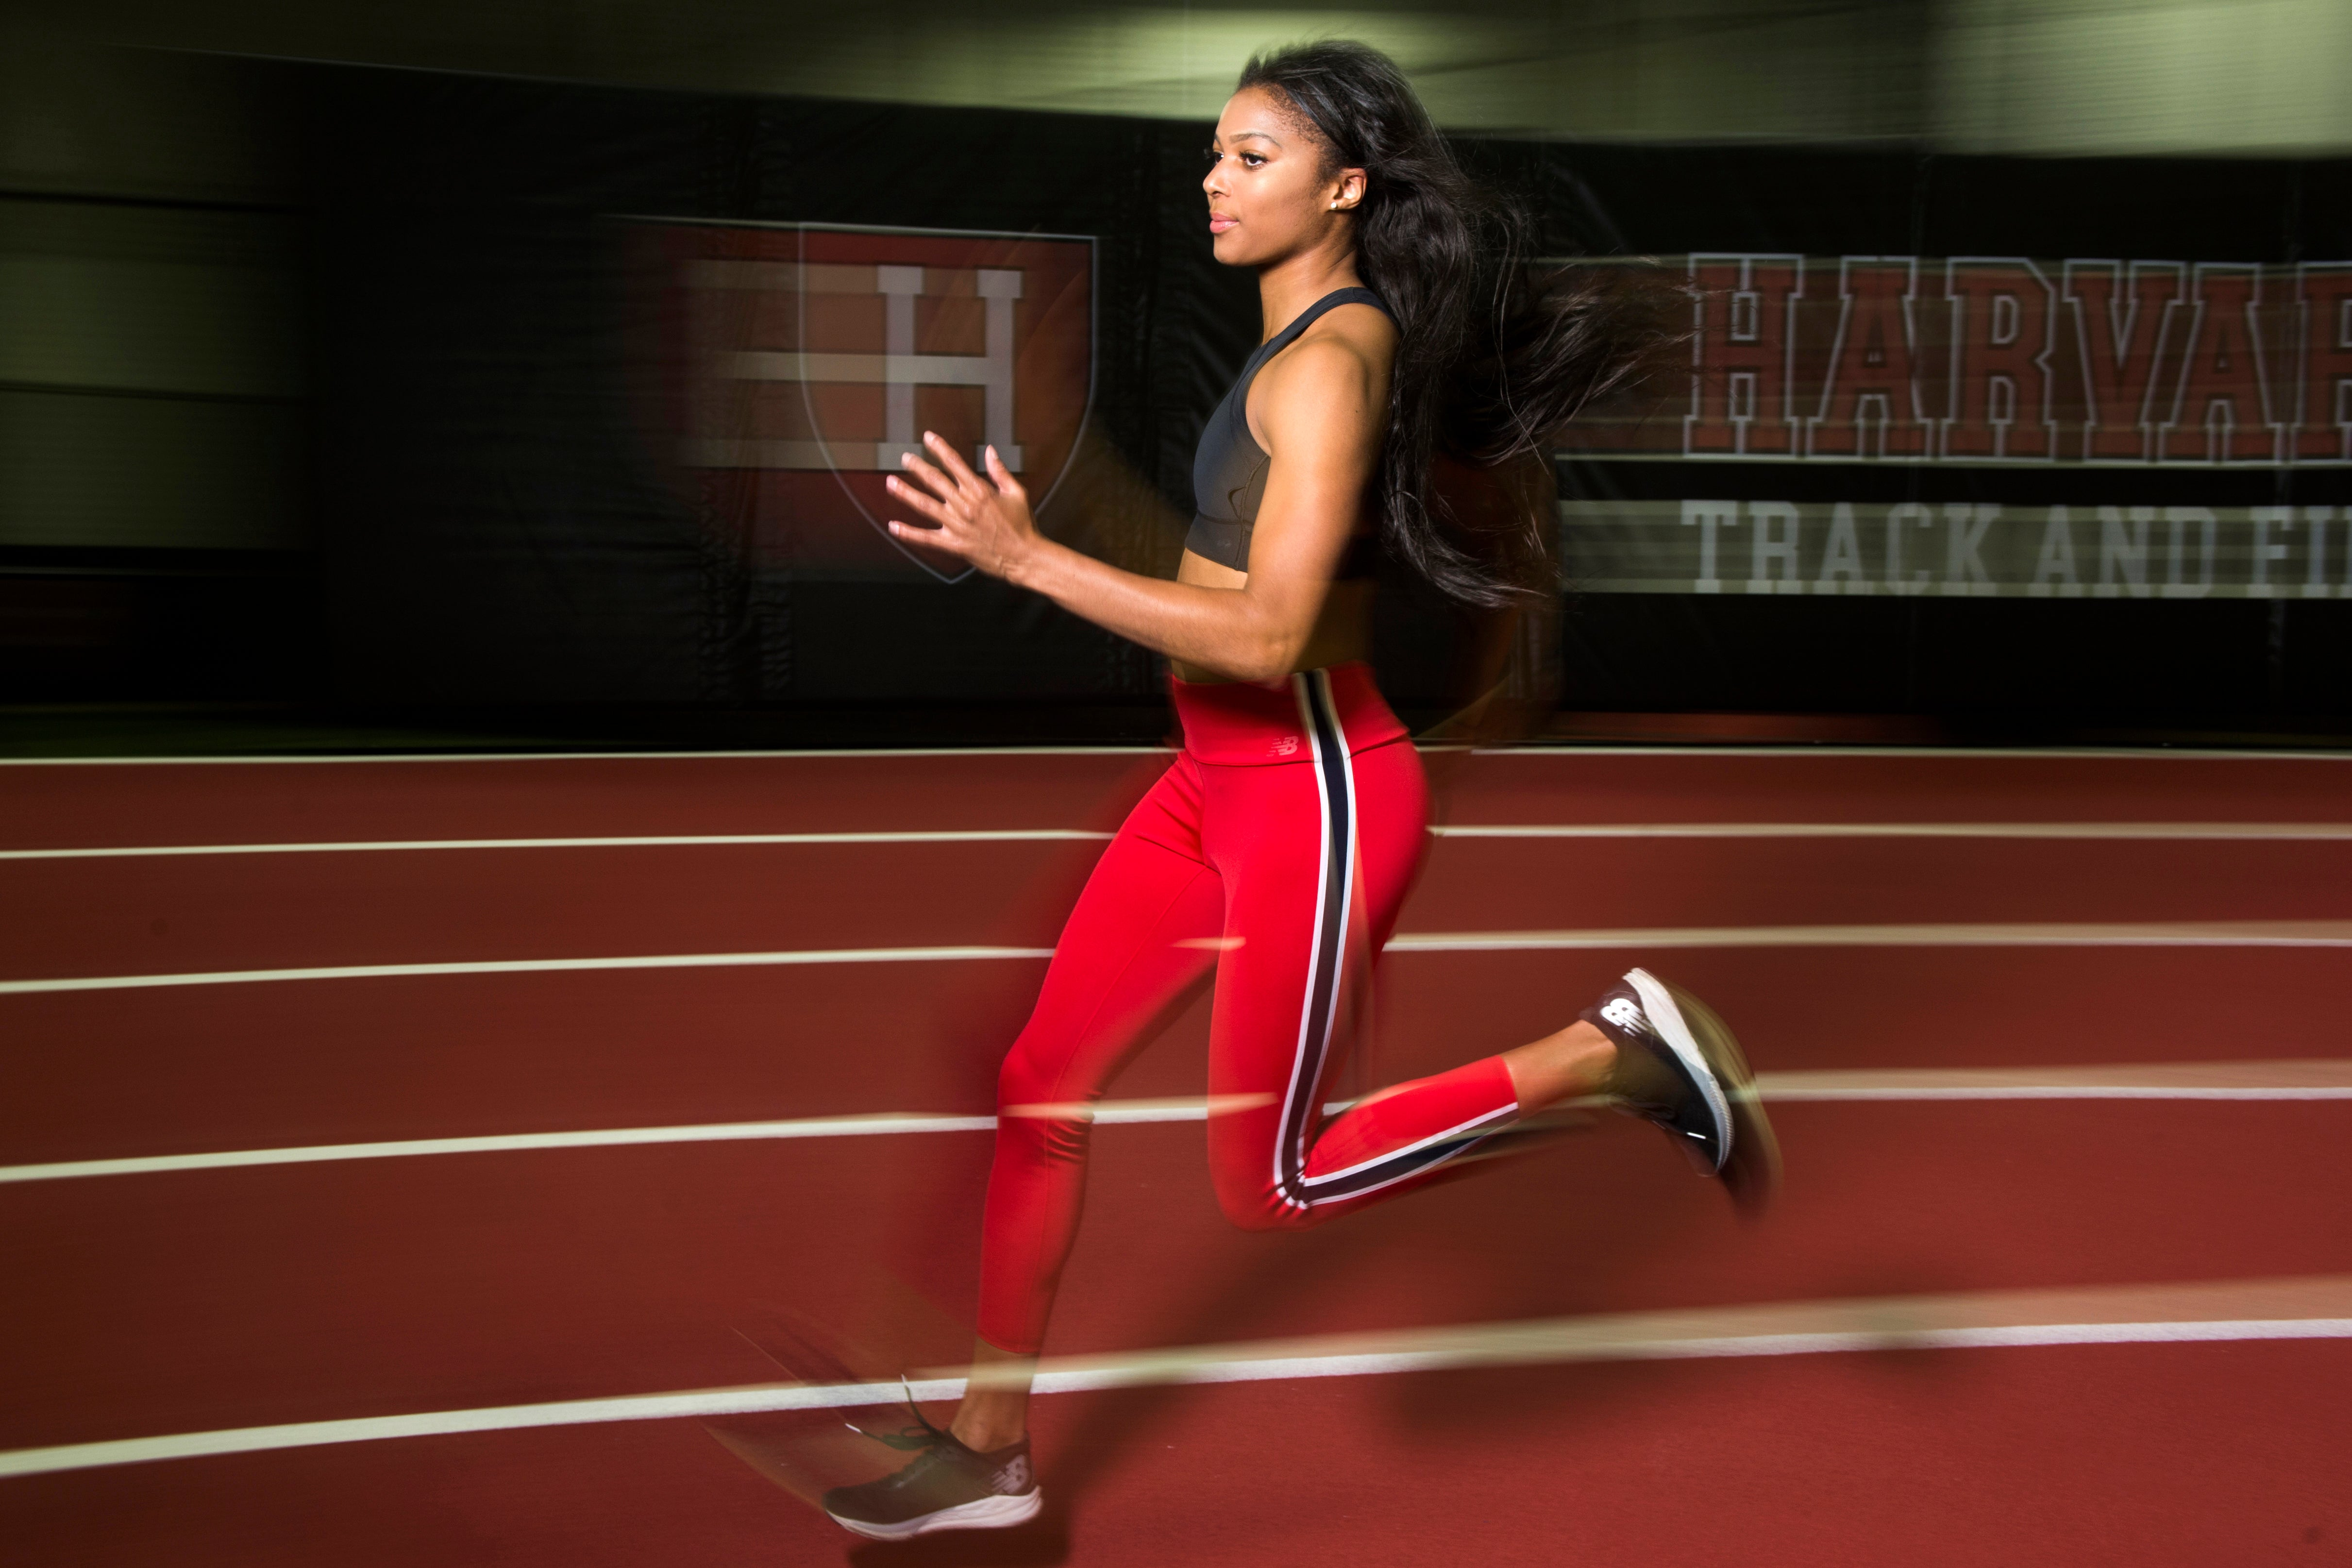 Athlete running.